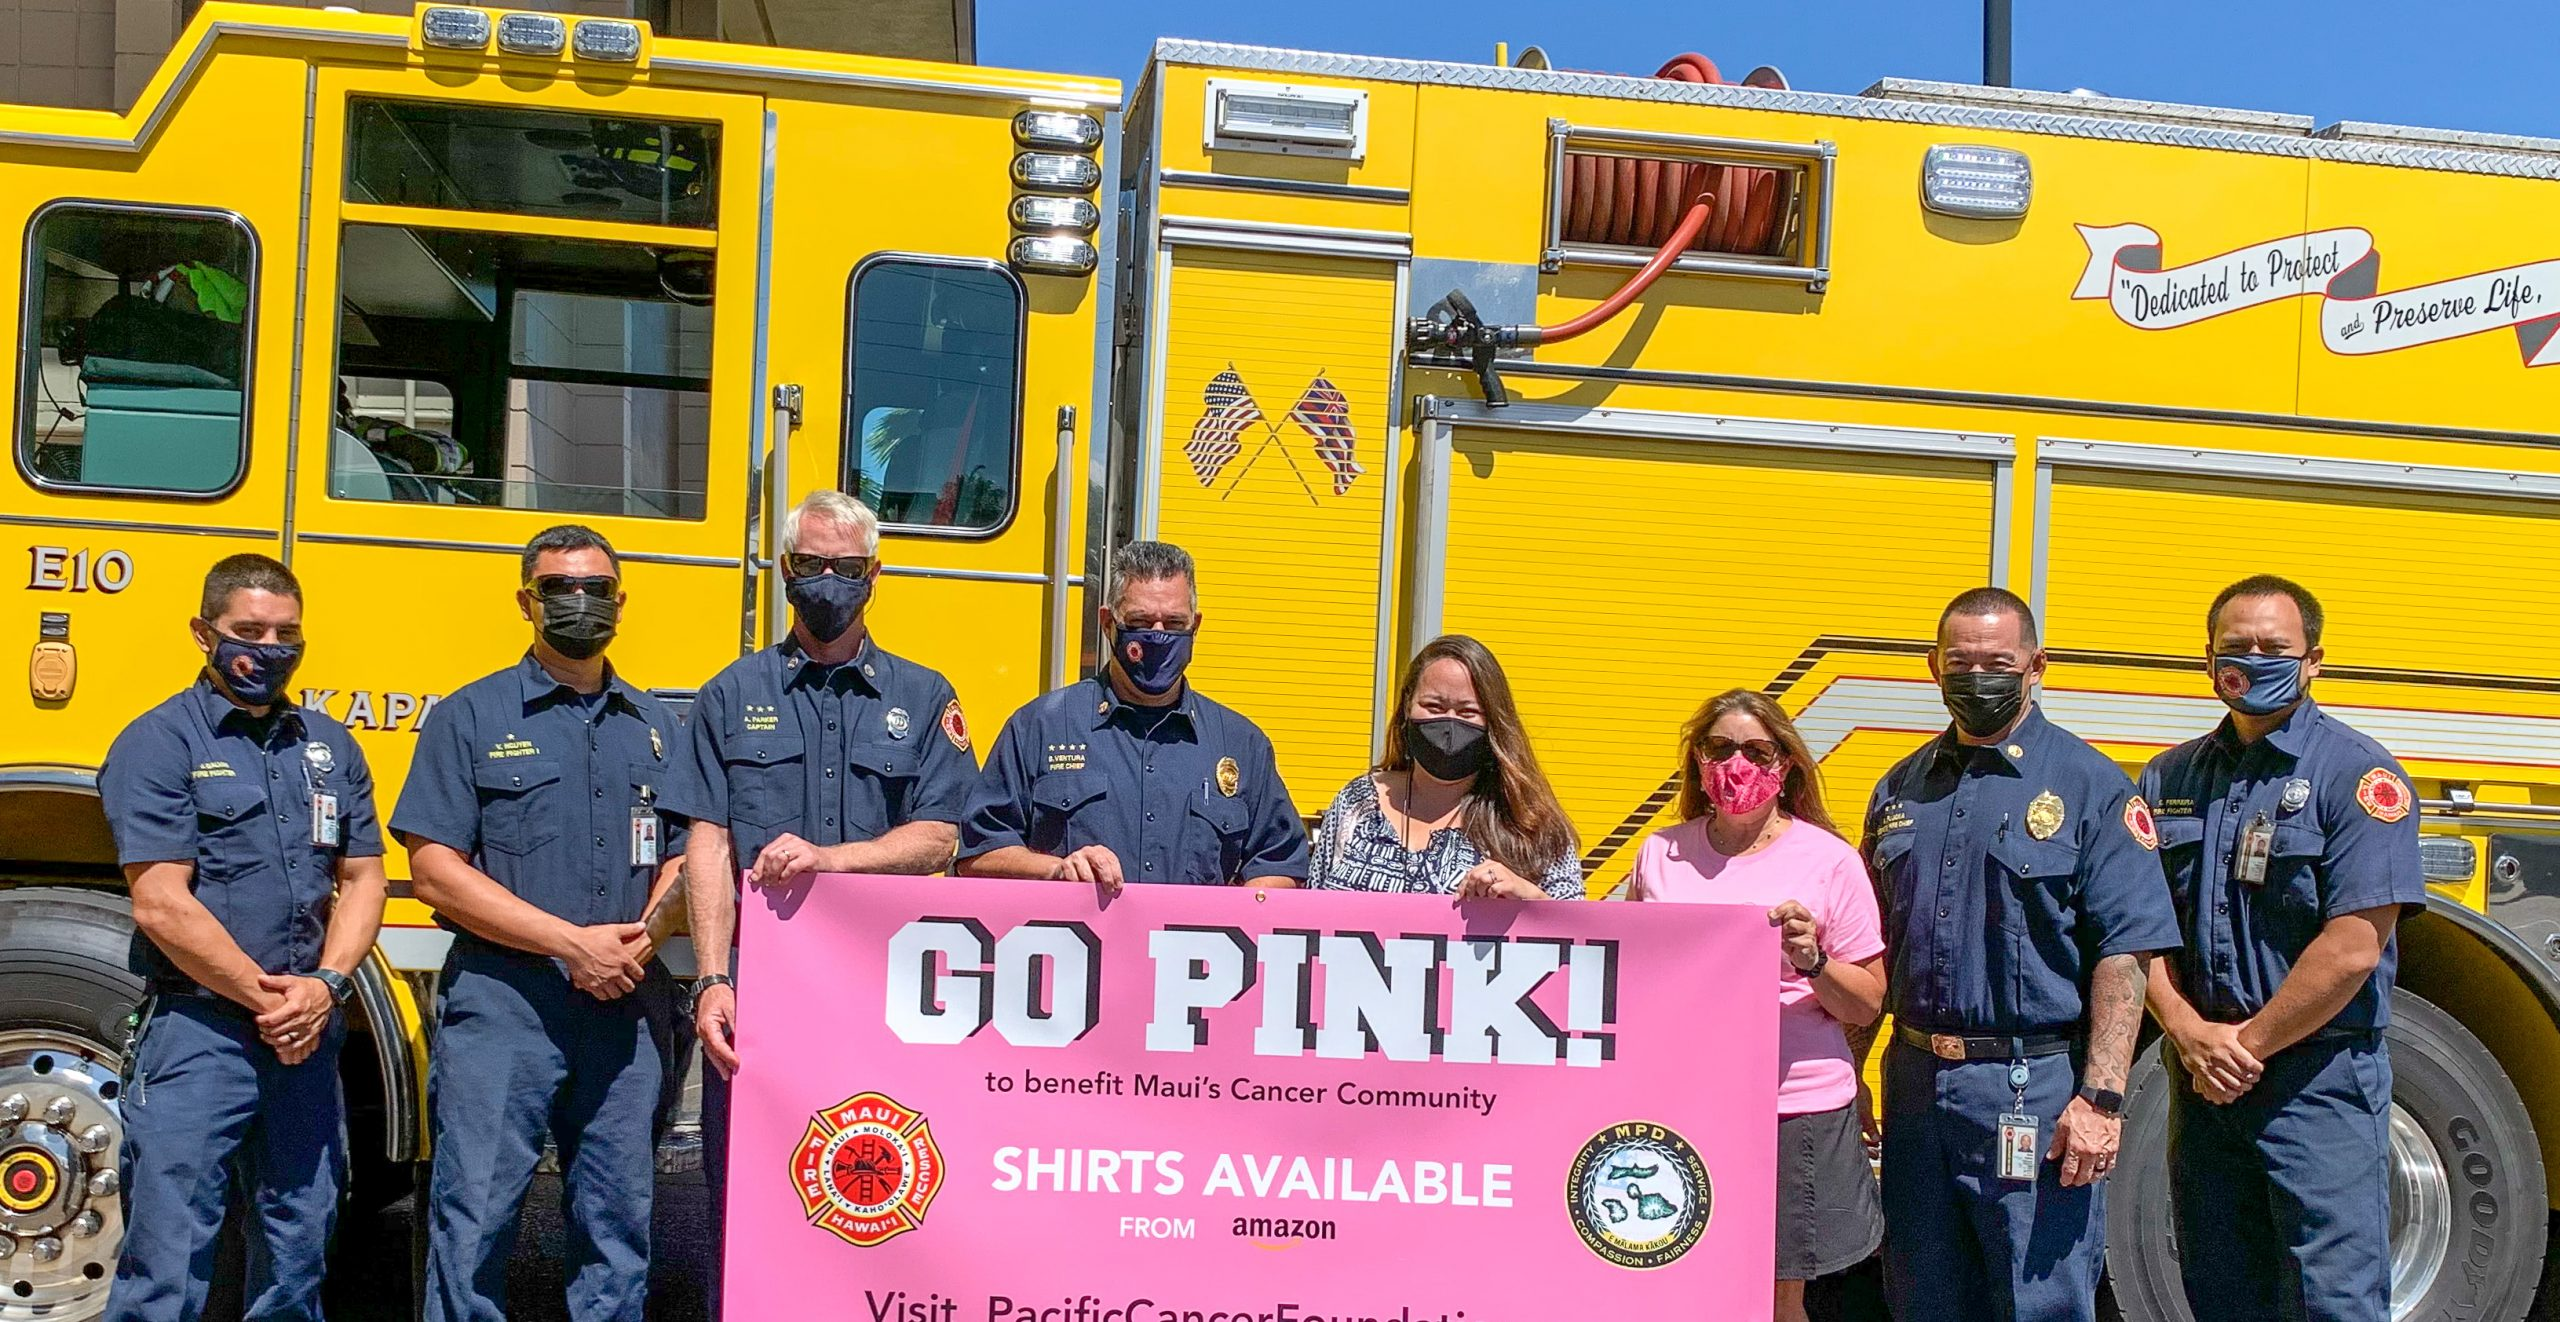 Maui Police & Fire Selling Go Pink! T-Shirts To Support Cancer Foundation